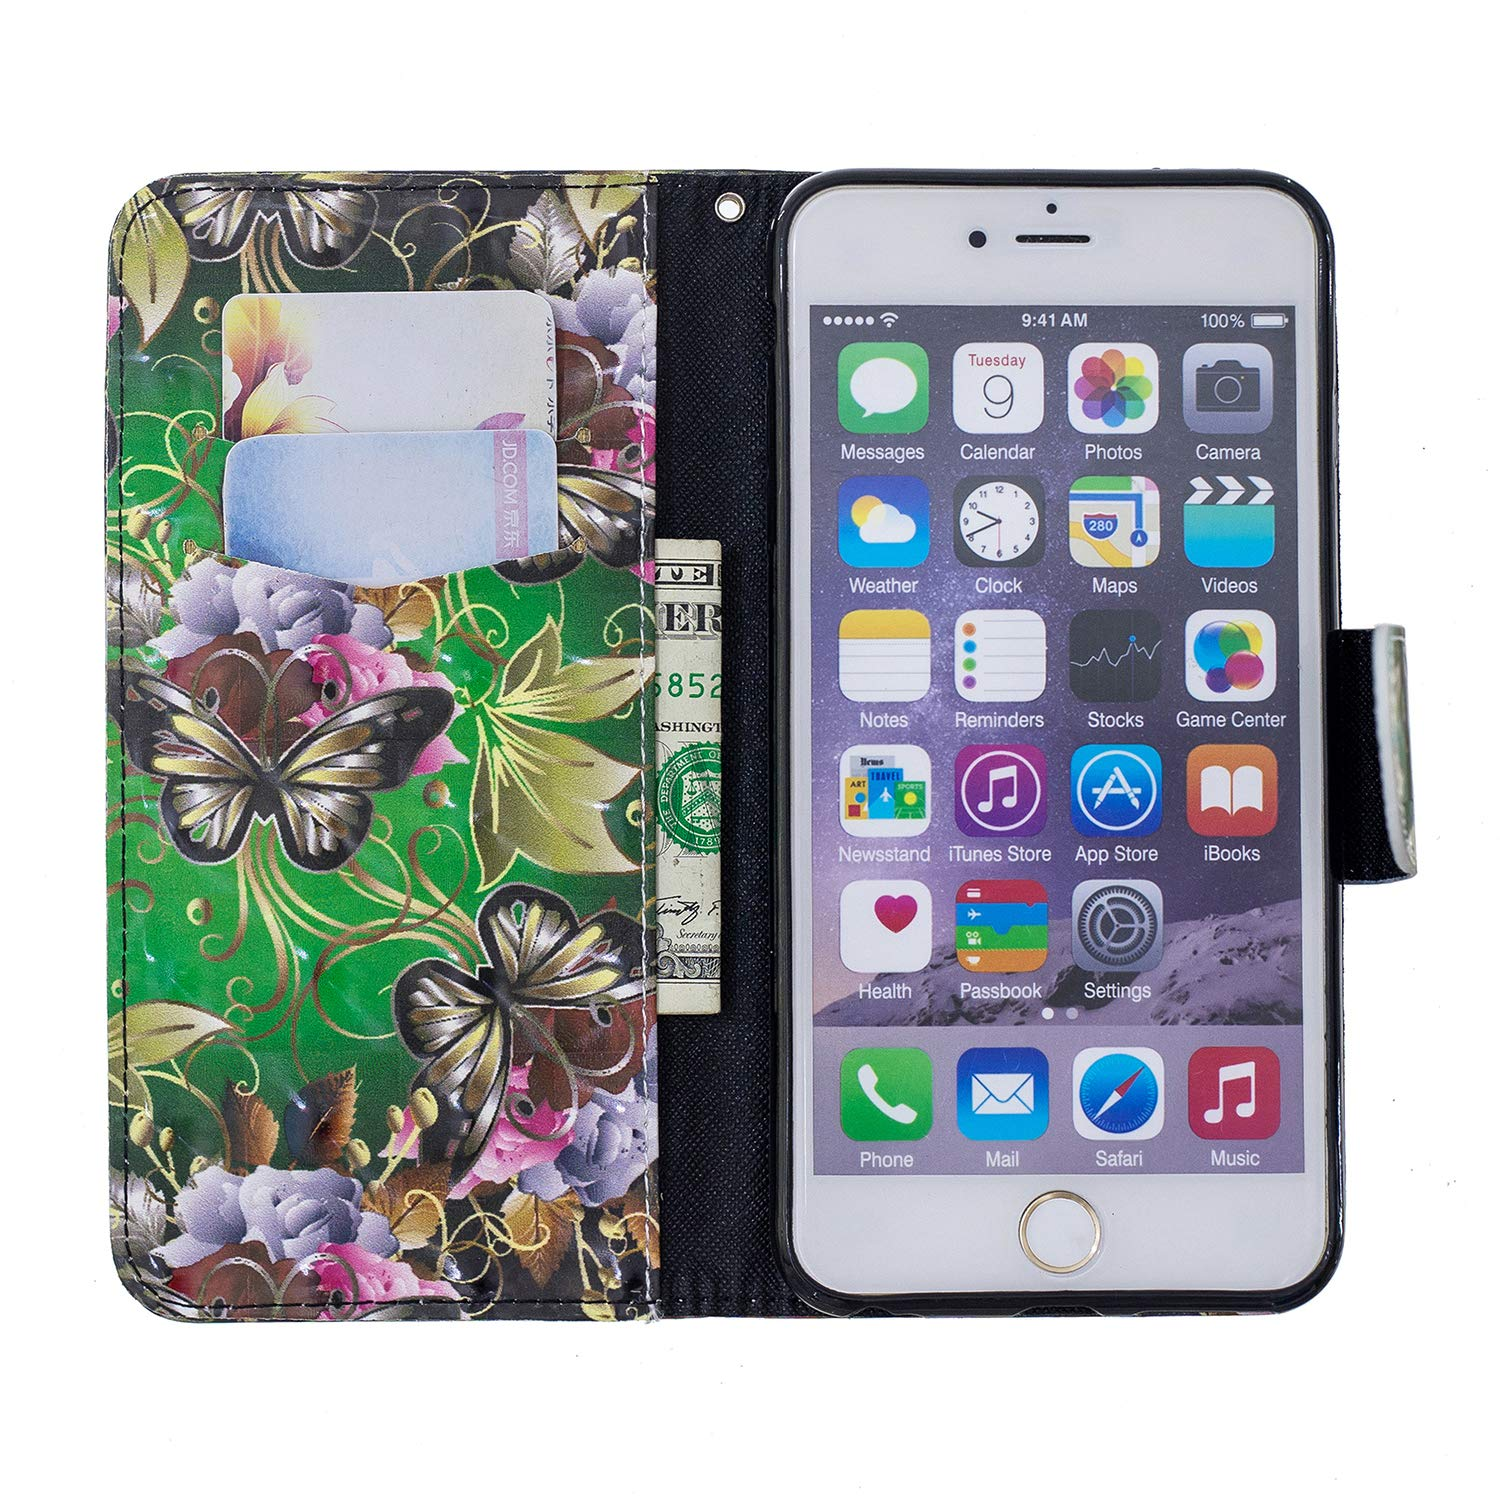 6 Plus NEXCURIO 5.5 iPhone 6S Plus NEBFE13302#5 6 Plus Wallet Case with Card Holder Folding Kickstand Leather Case Flip Cover for Apple iPhone 6S Plus